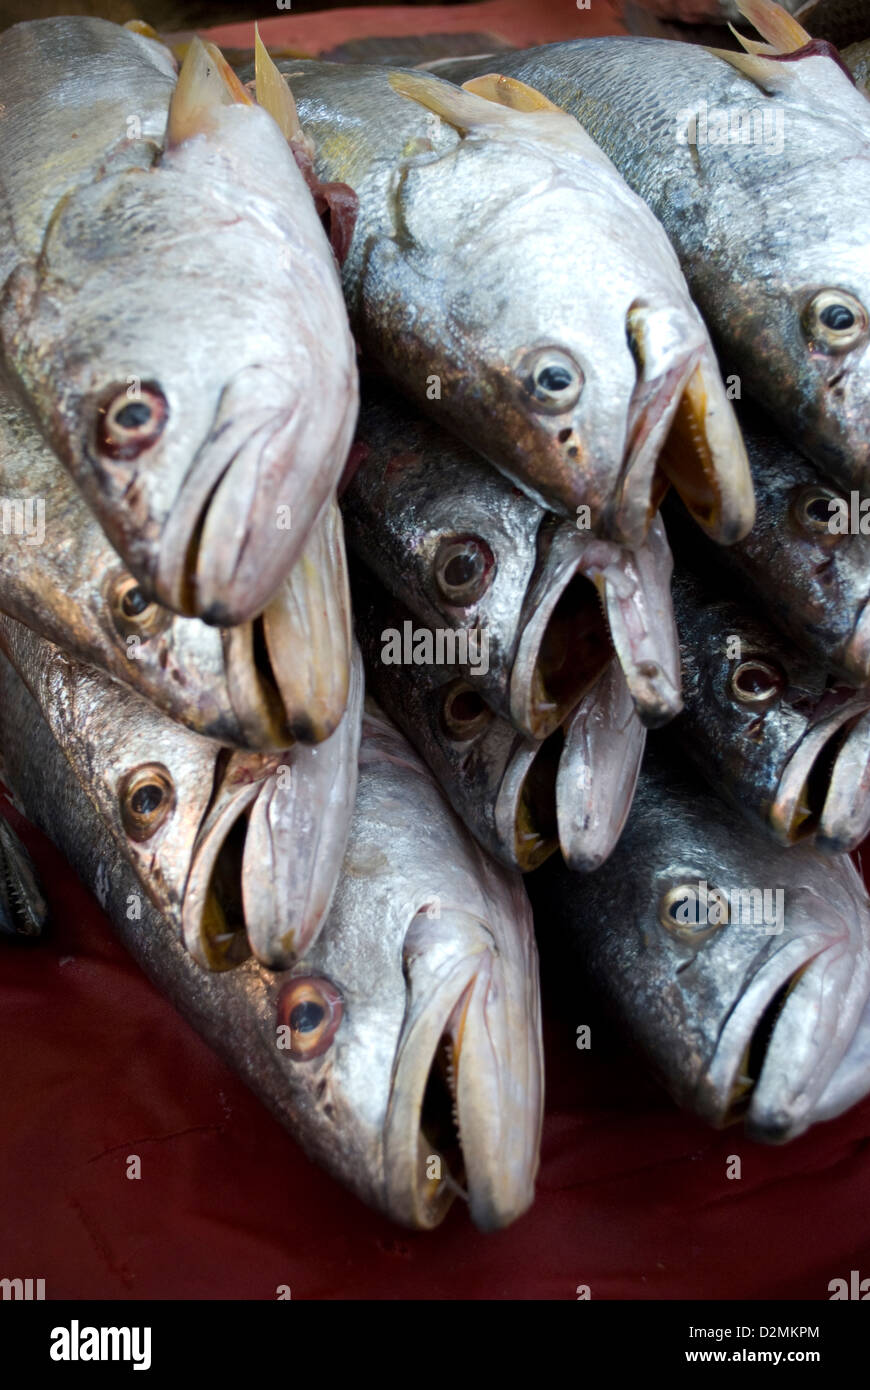 Locally caught fresh fish on sale at the Mercado in old Mazatlan,Mexico. - Stock Image